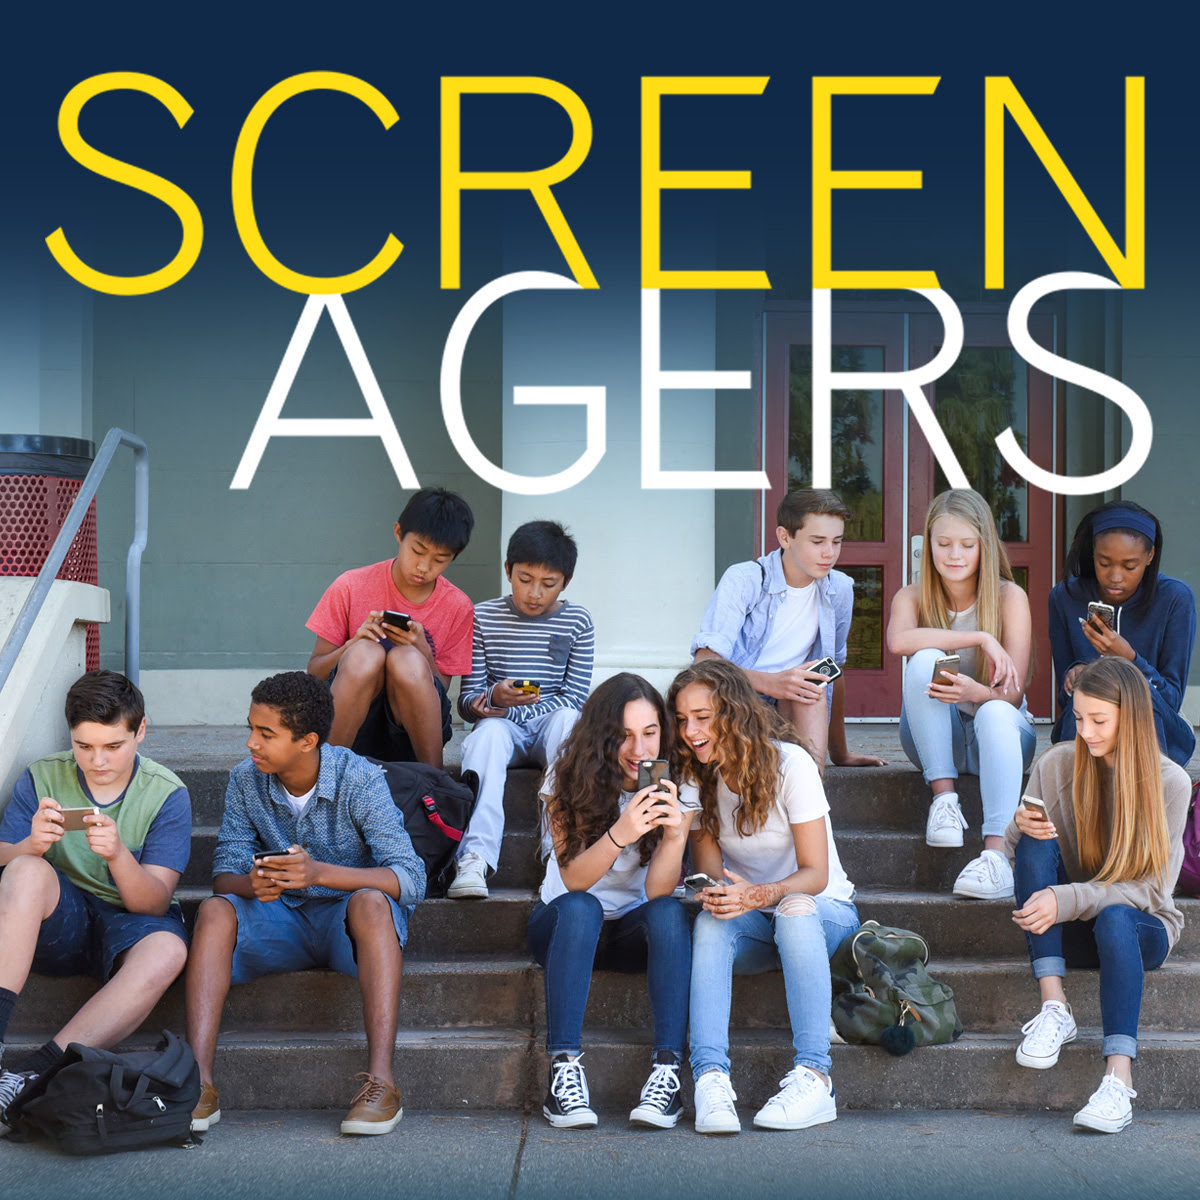 Screenagers Film Presented By SOMA School Library Friends